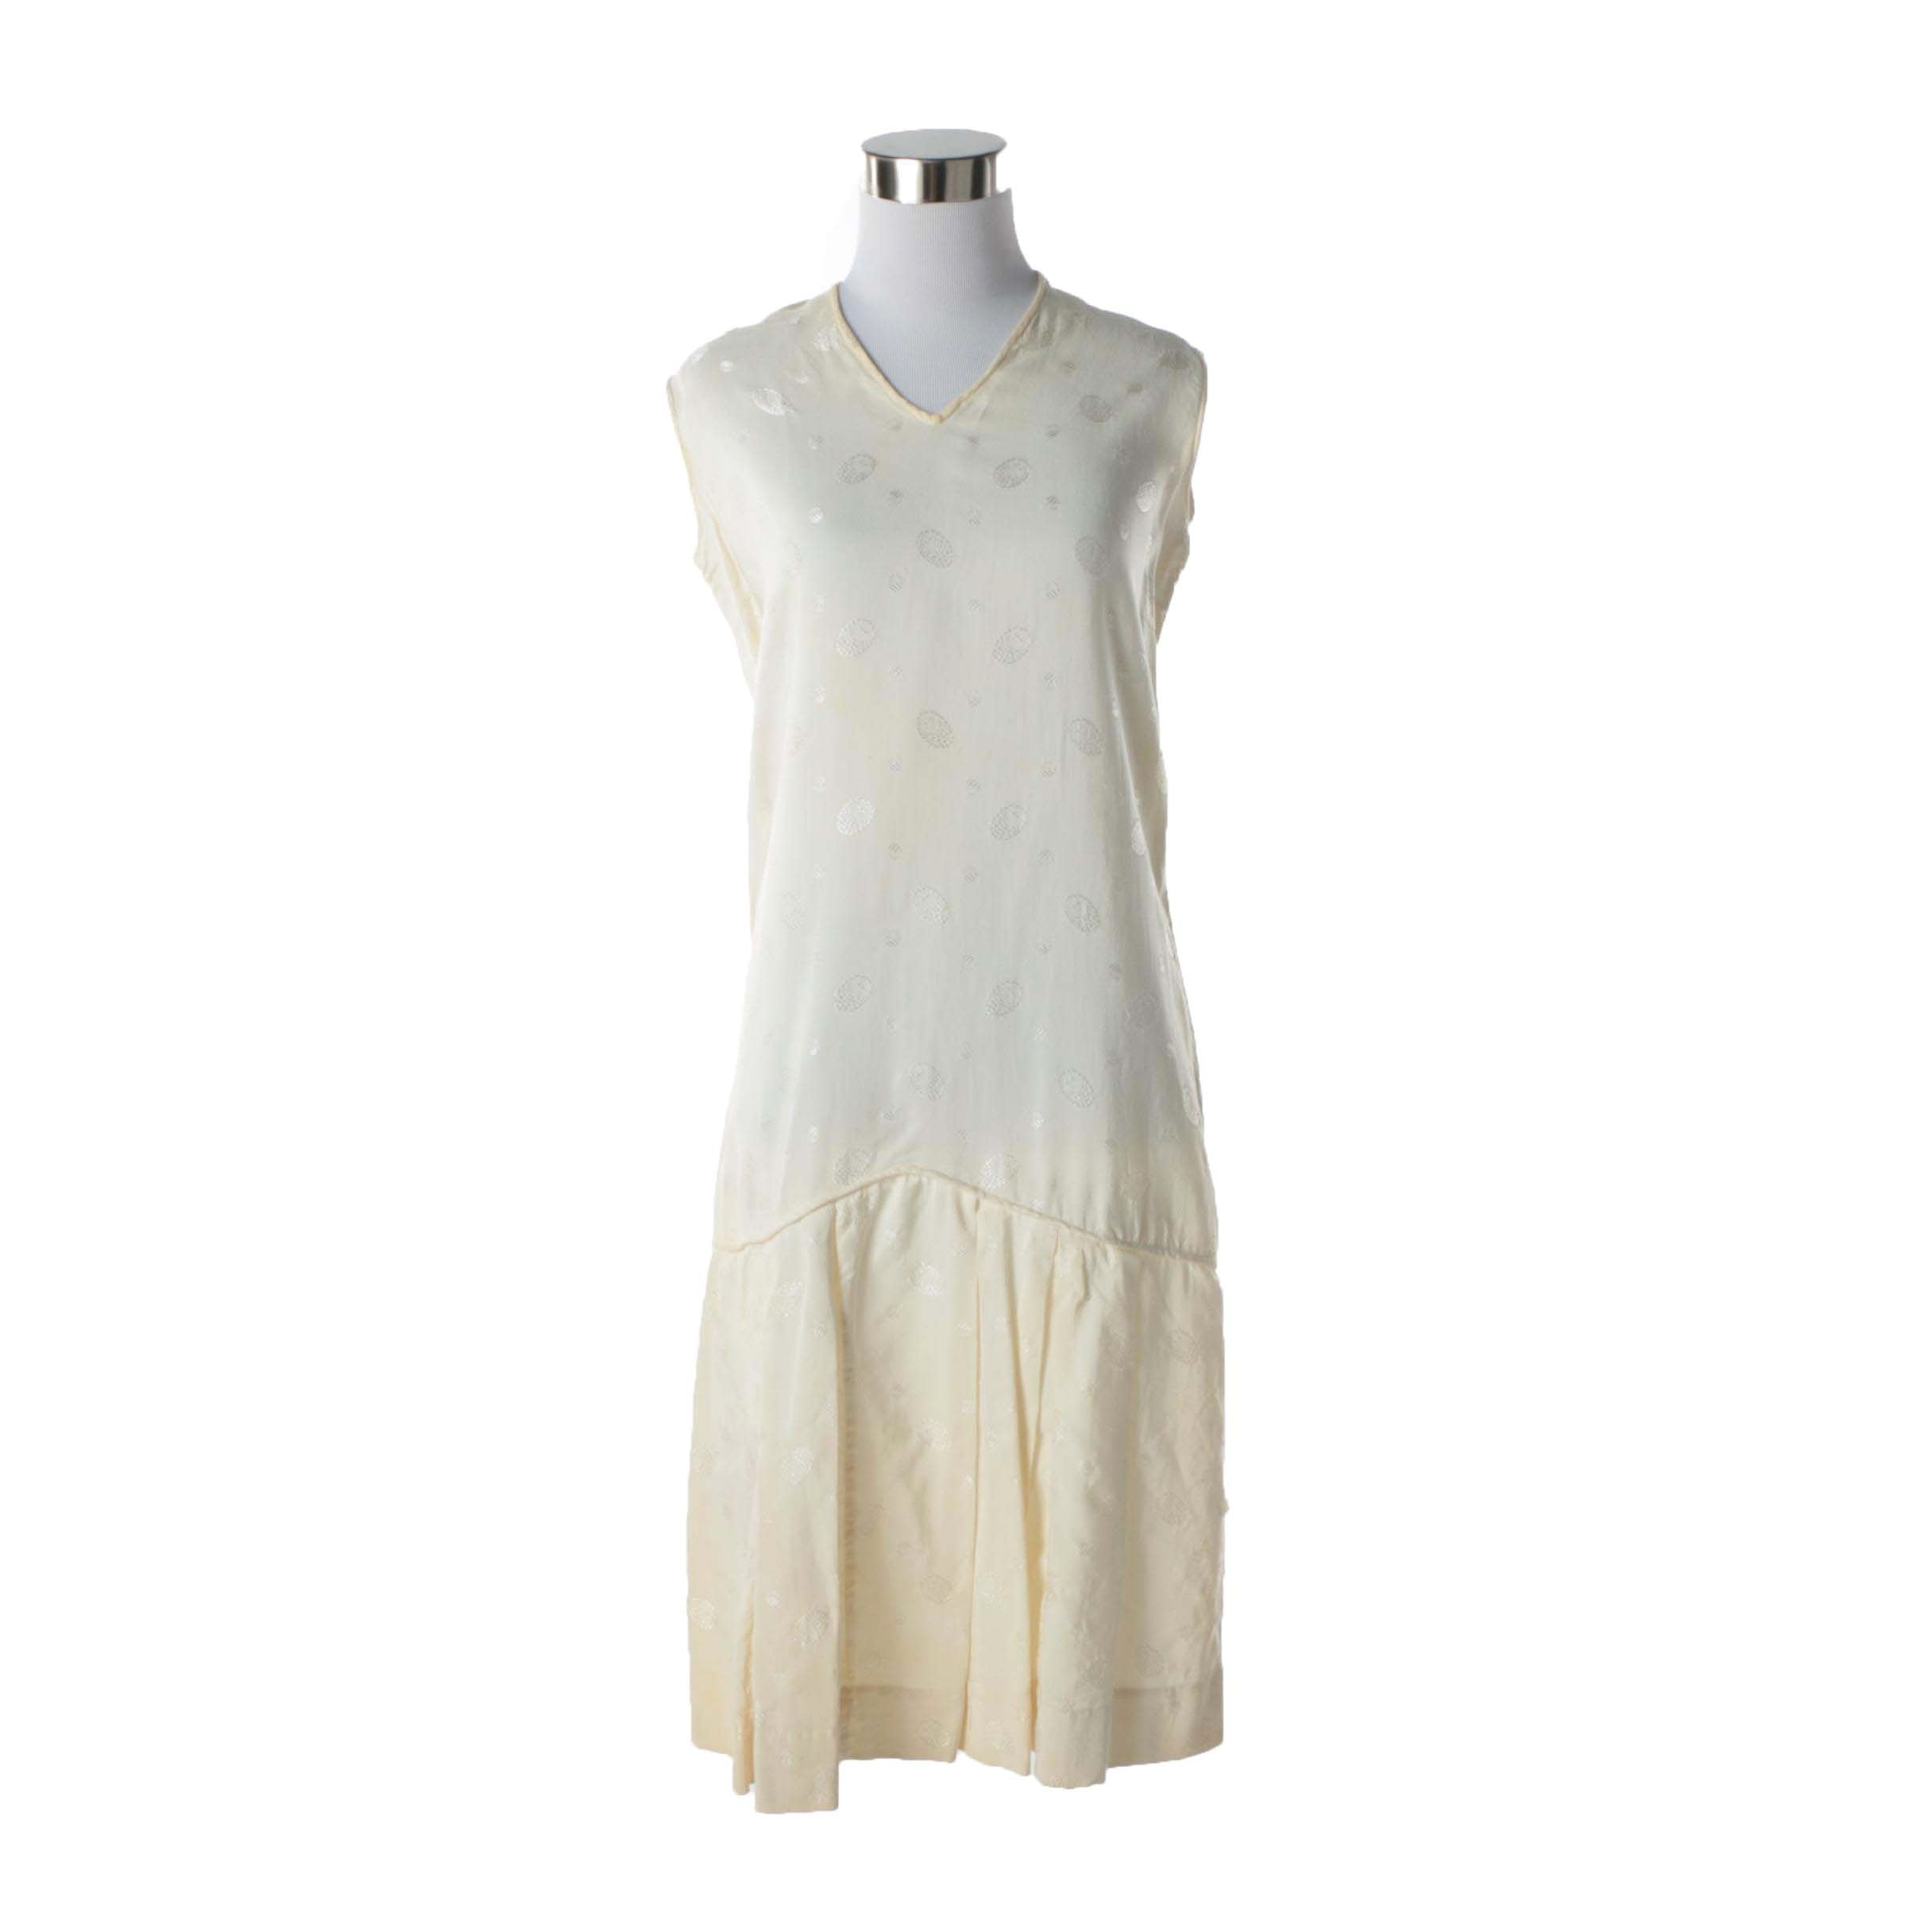 Circa 1920s Vintage Cream Silk Blend Drop Waist Sleeveless Dress